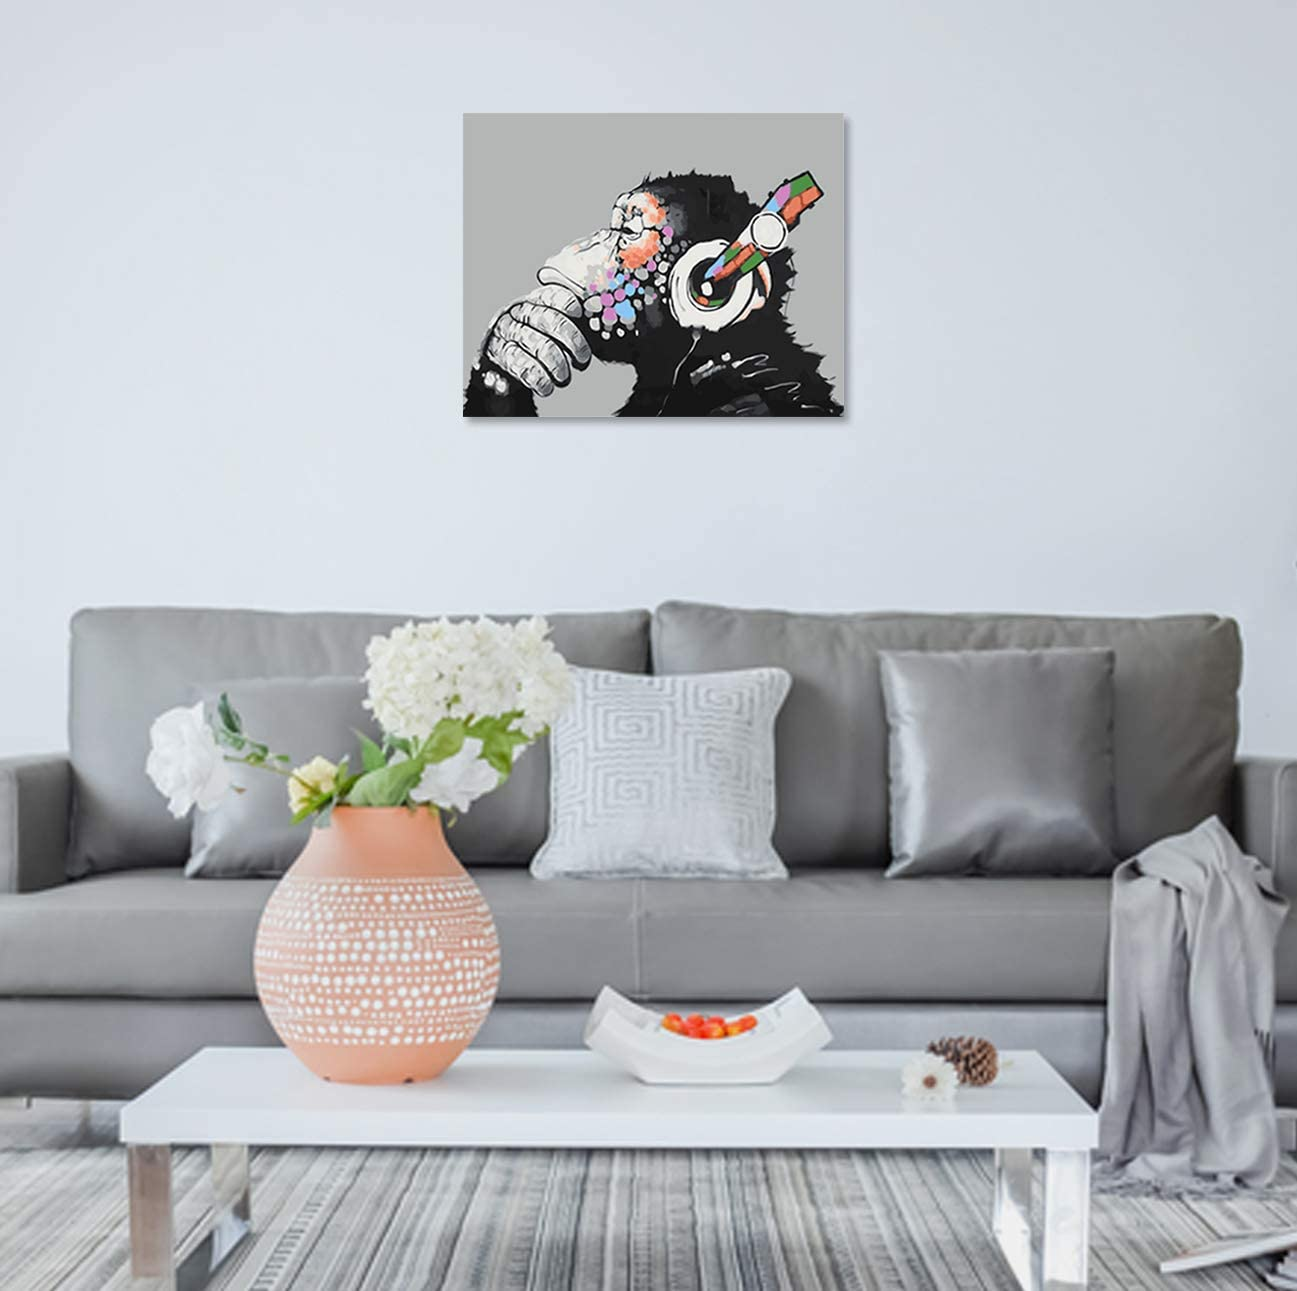 CUFUN Art Paint by Numbers Kit DIY Pre-Printed Canvas Oil Painting Gifts for Kids Adults Wall Decor without Frame 40x50cm Abstract Owl